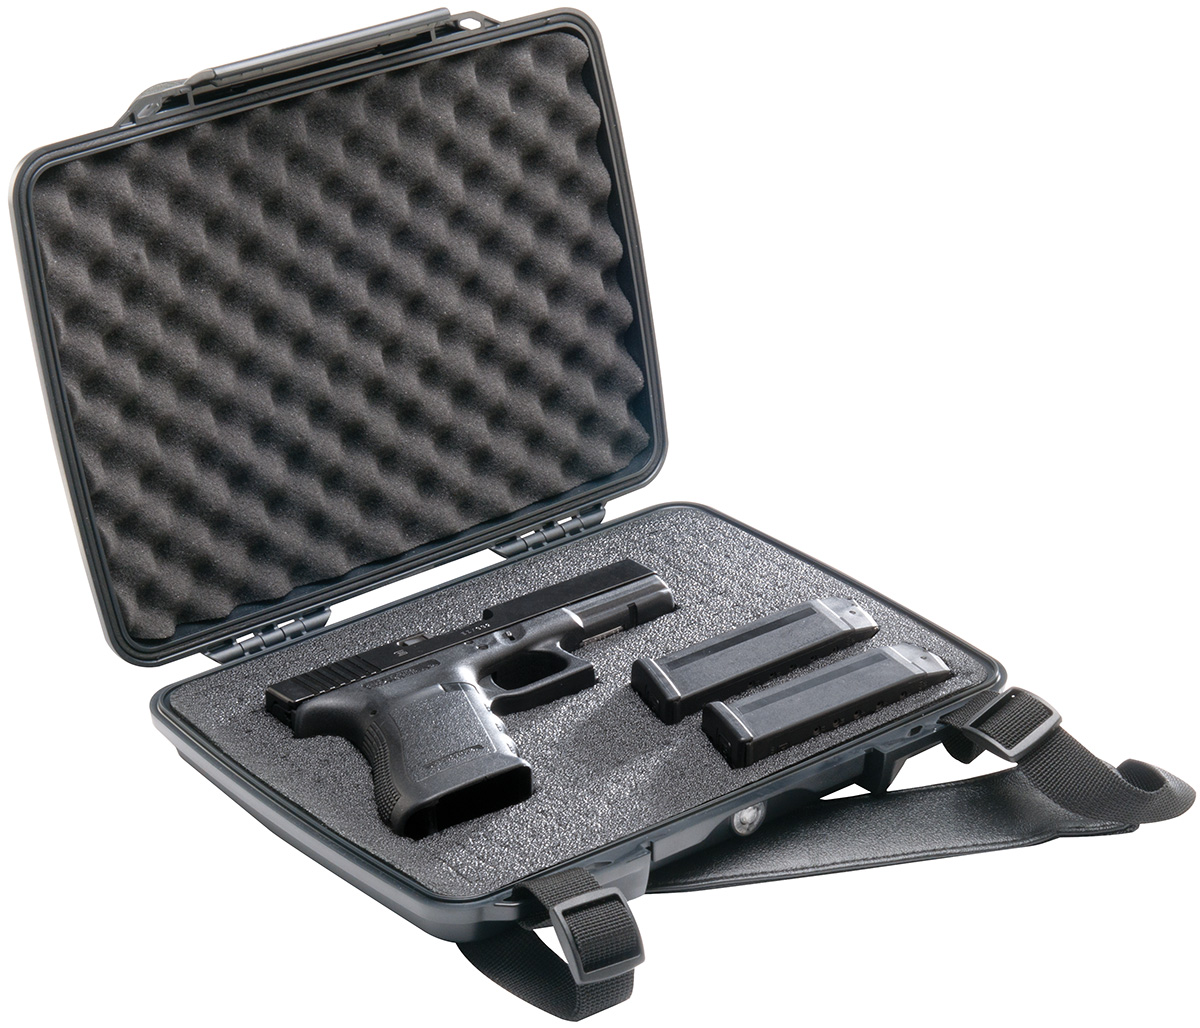 pelican p1075 hard pistol gun waterproof case